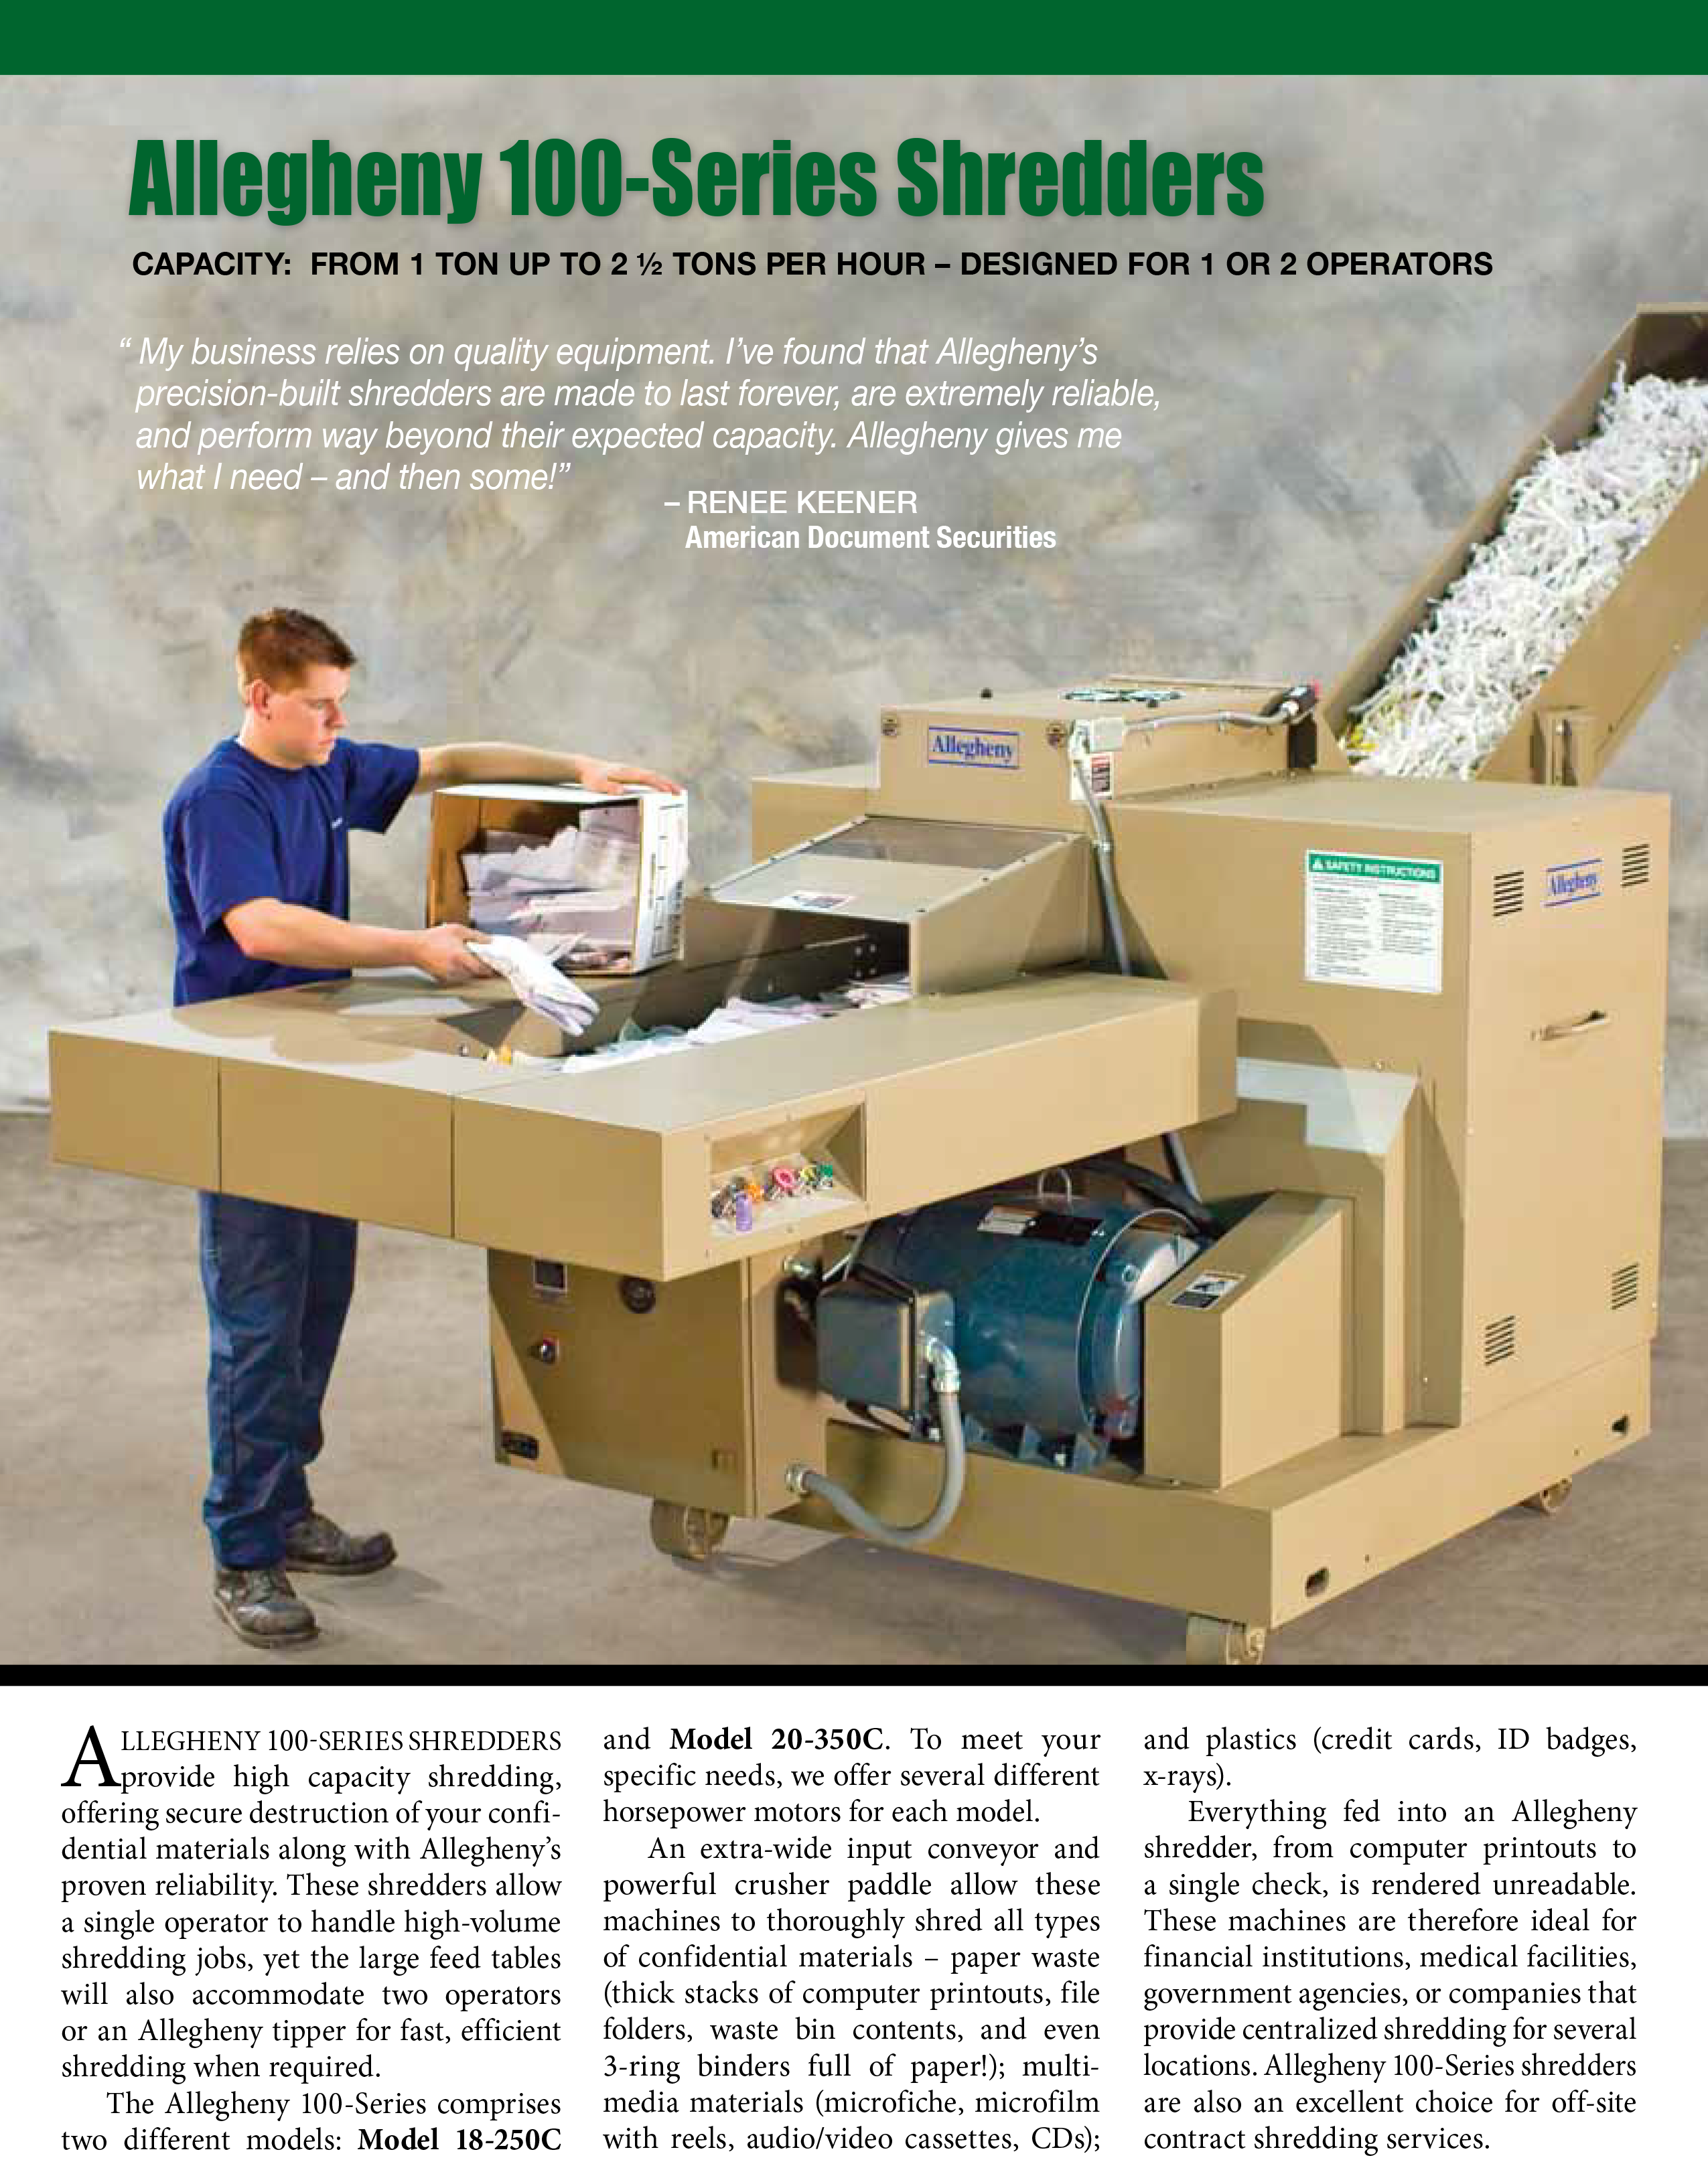 Learn more about the 100-Series Shredders in the Allegheny Brochure.